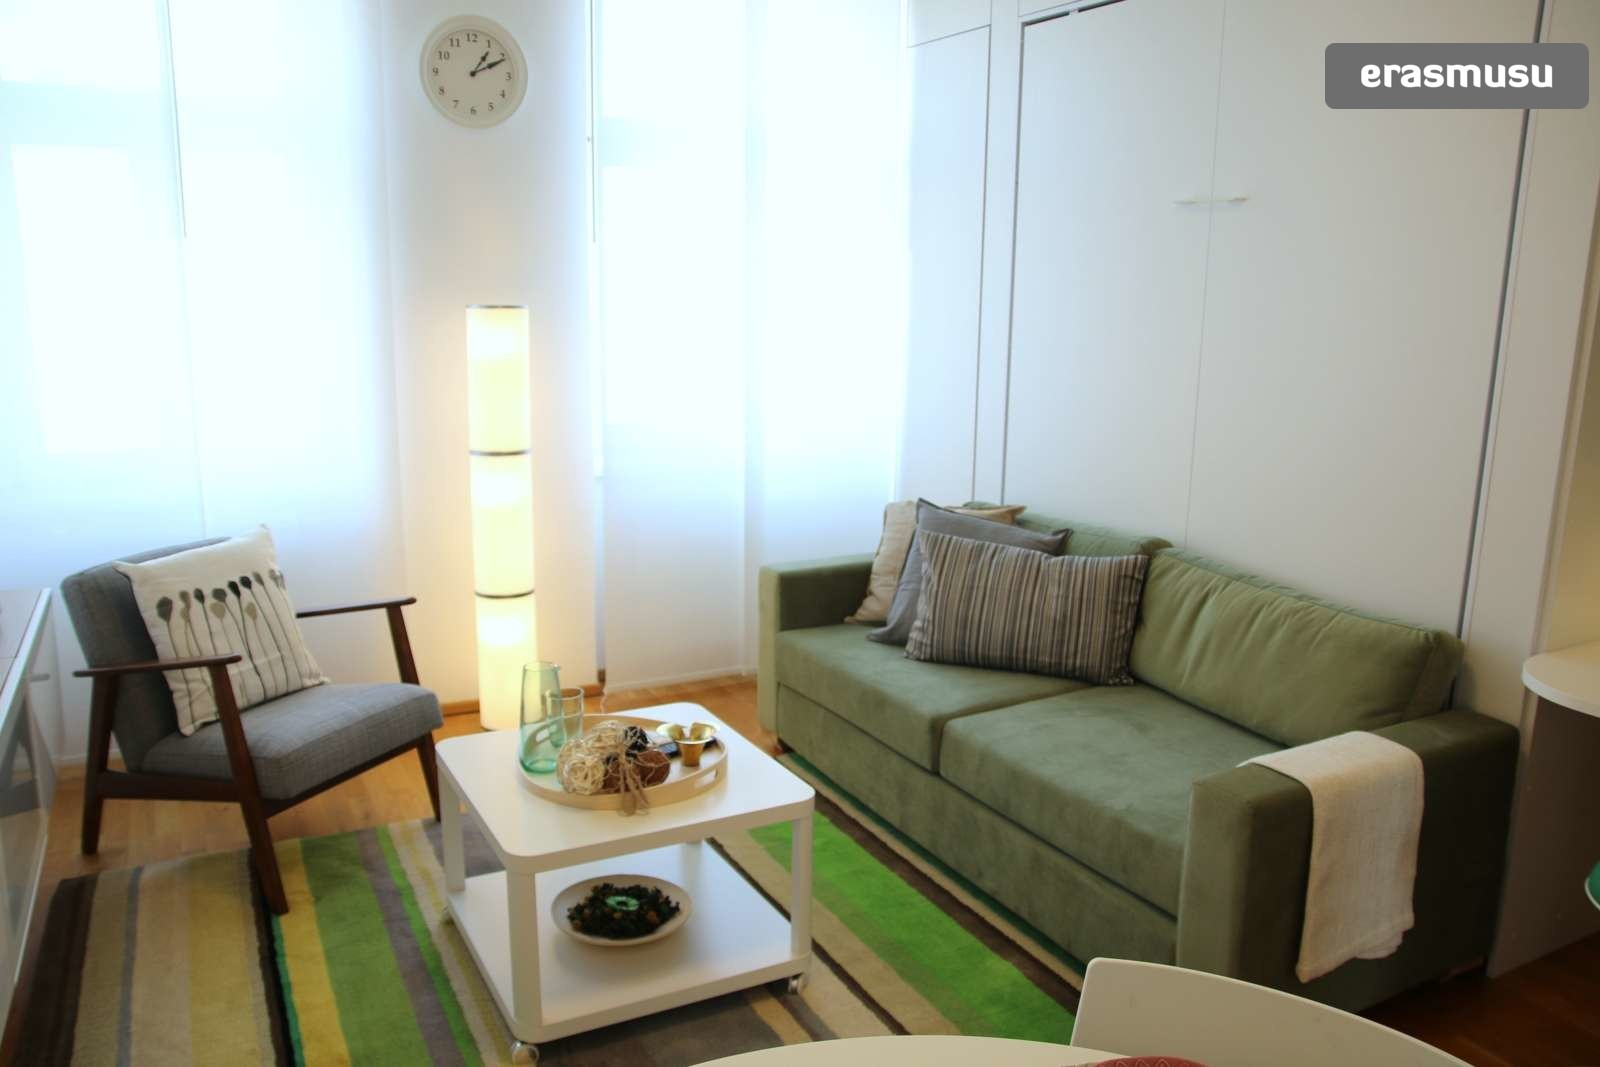 studio-apartment-rent-wahring-7910c5b7cdfacace4689081926af0921